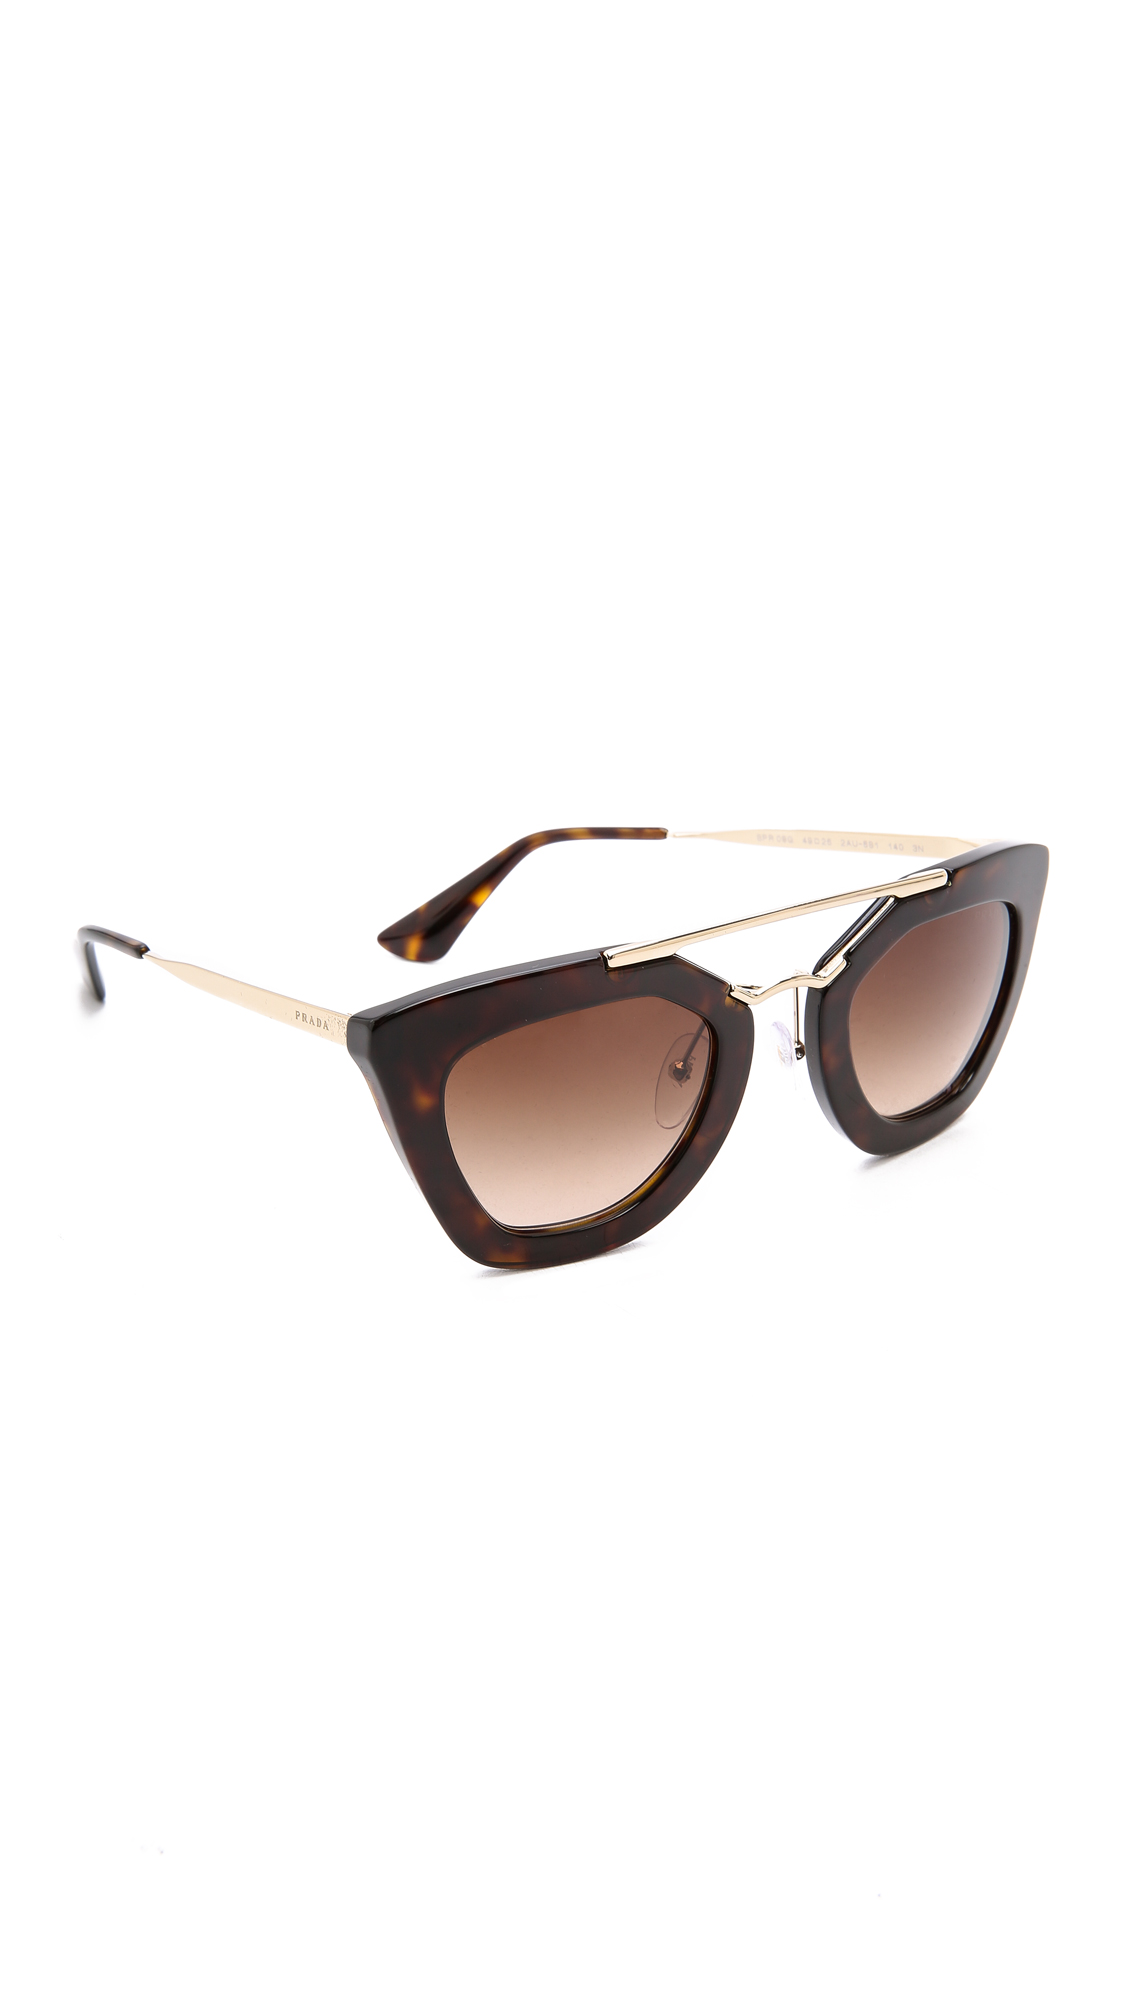 Prada Thick Frame Sunglasses - Havana/Brown at Shopbop